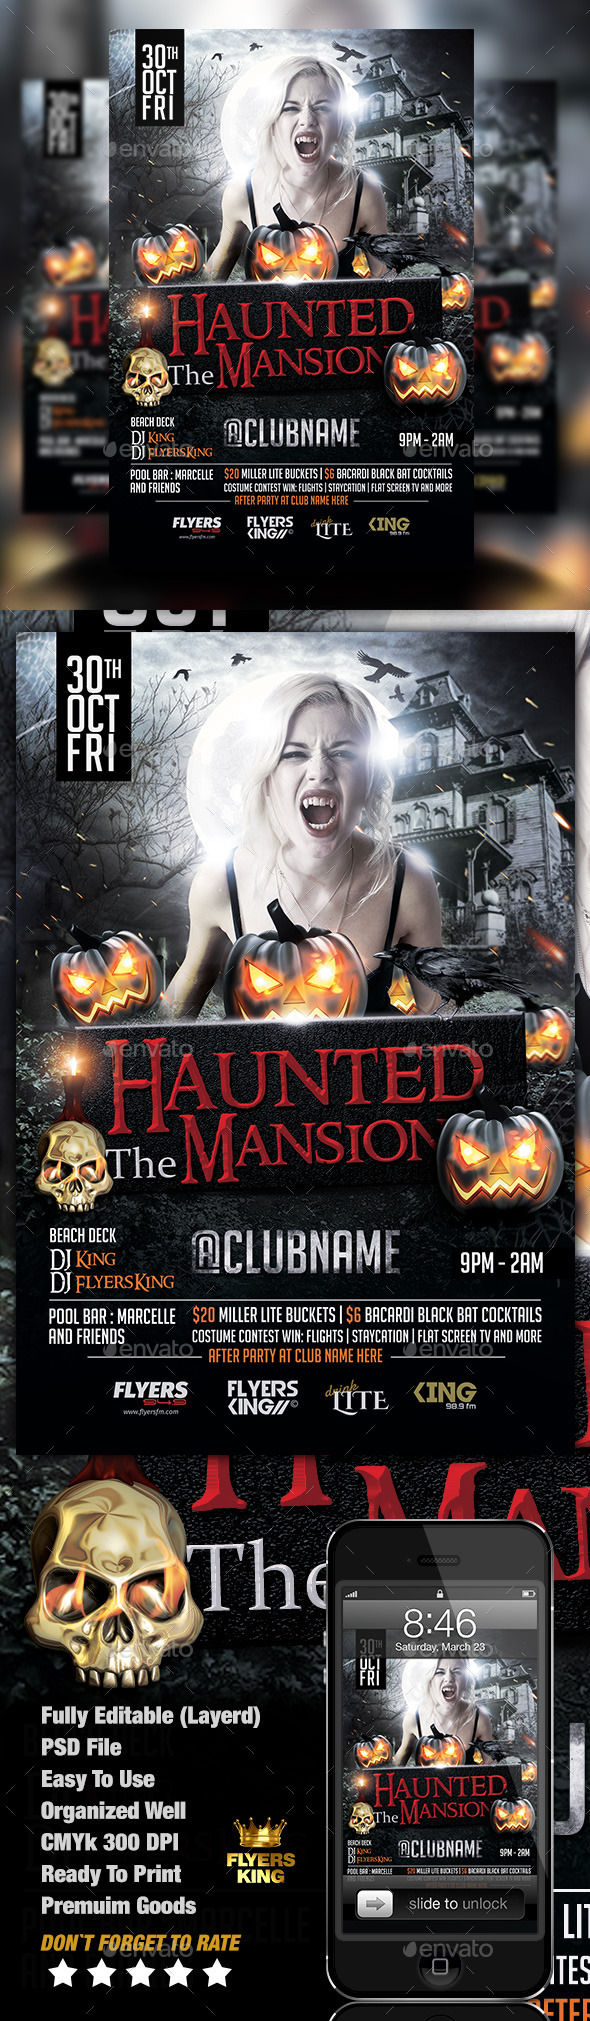 The Haunted Mansion Flyer by FlyersKing (Halloween party flyer)